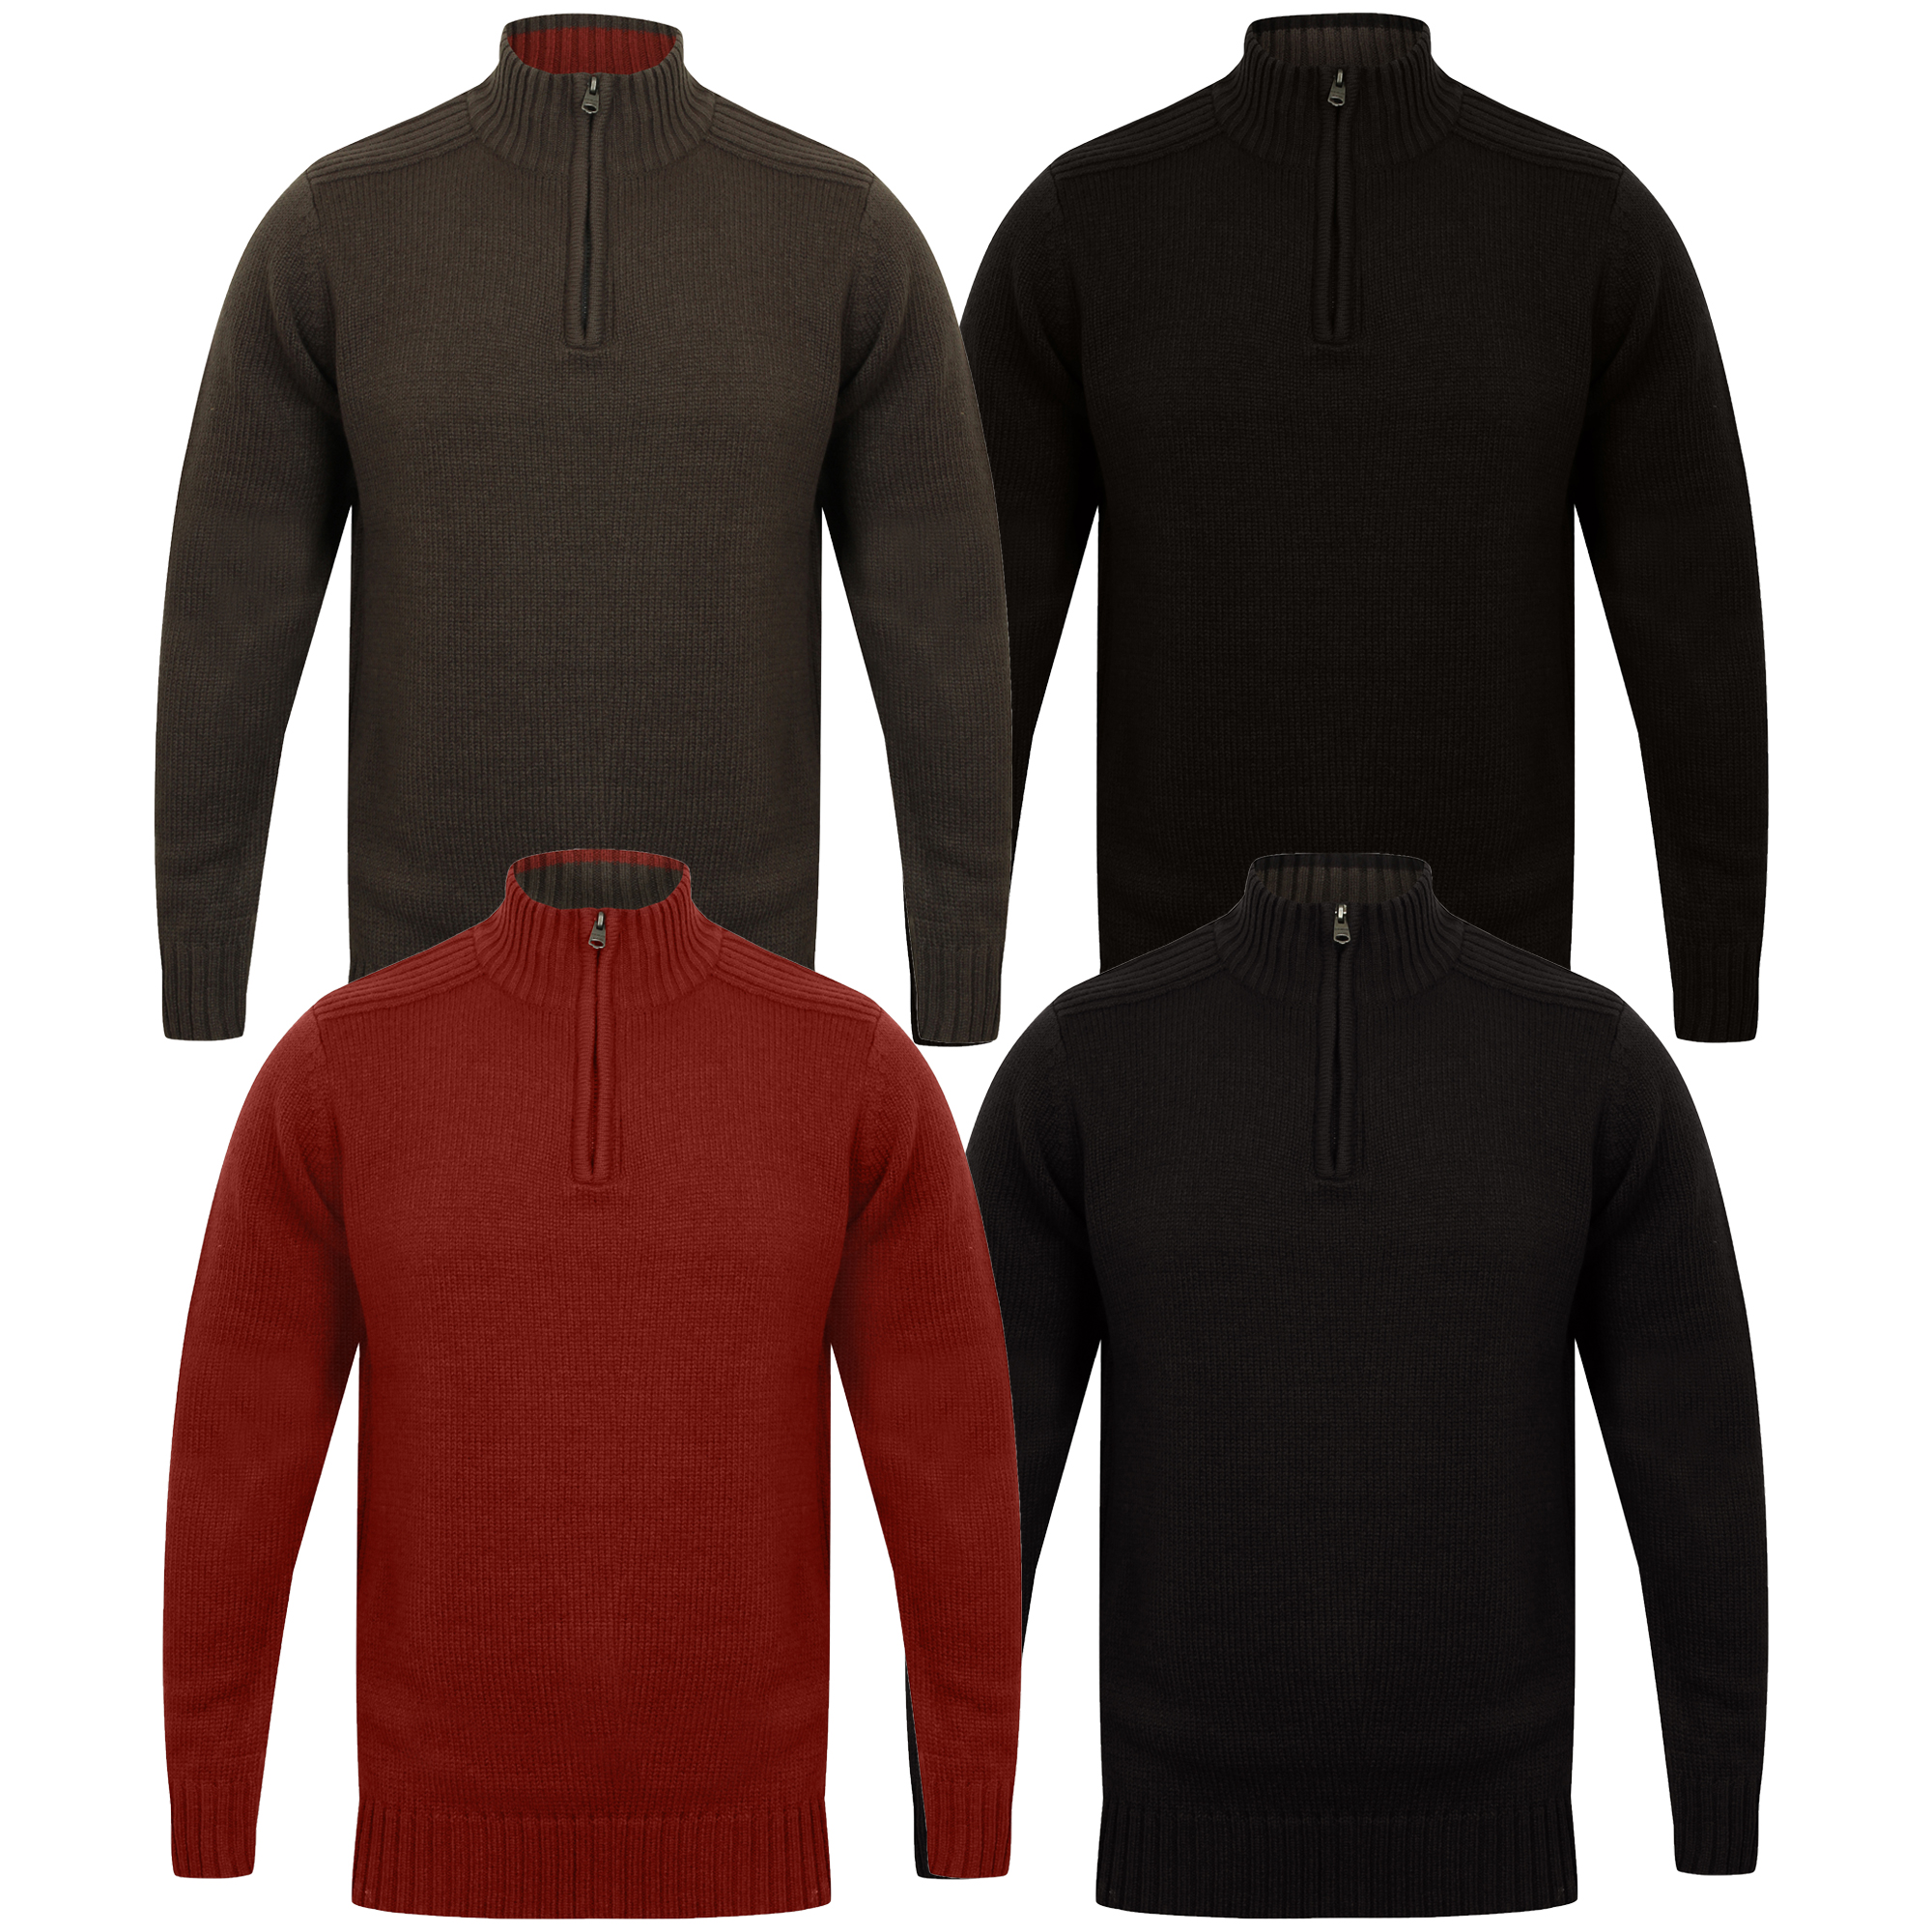 Mens-Knitted-Jumper-Kensington-Eastside-Pullover-Sweater-Top-Funnel-Neck-Winter thumbnail 4